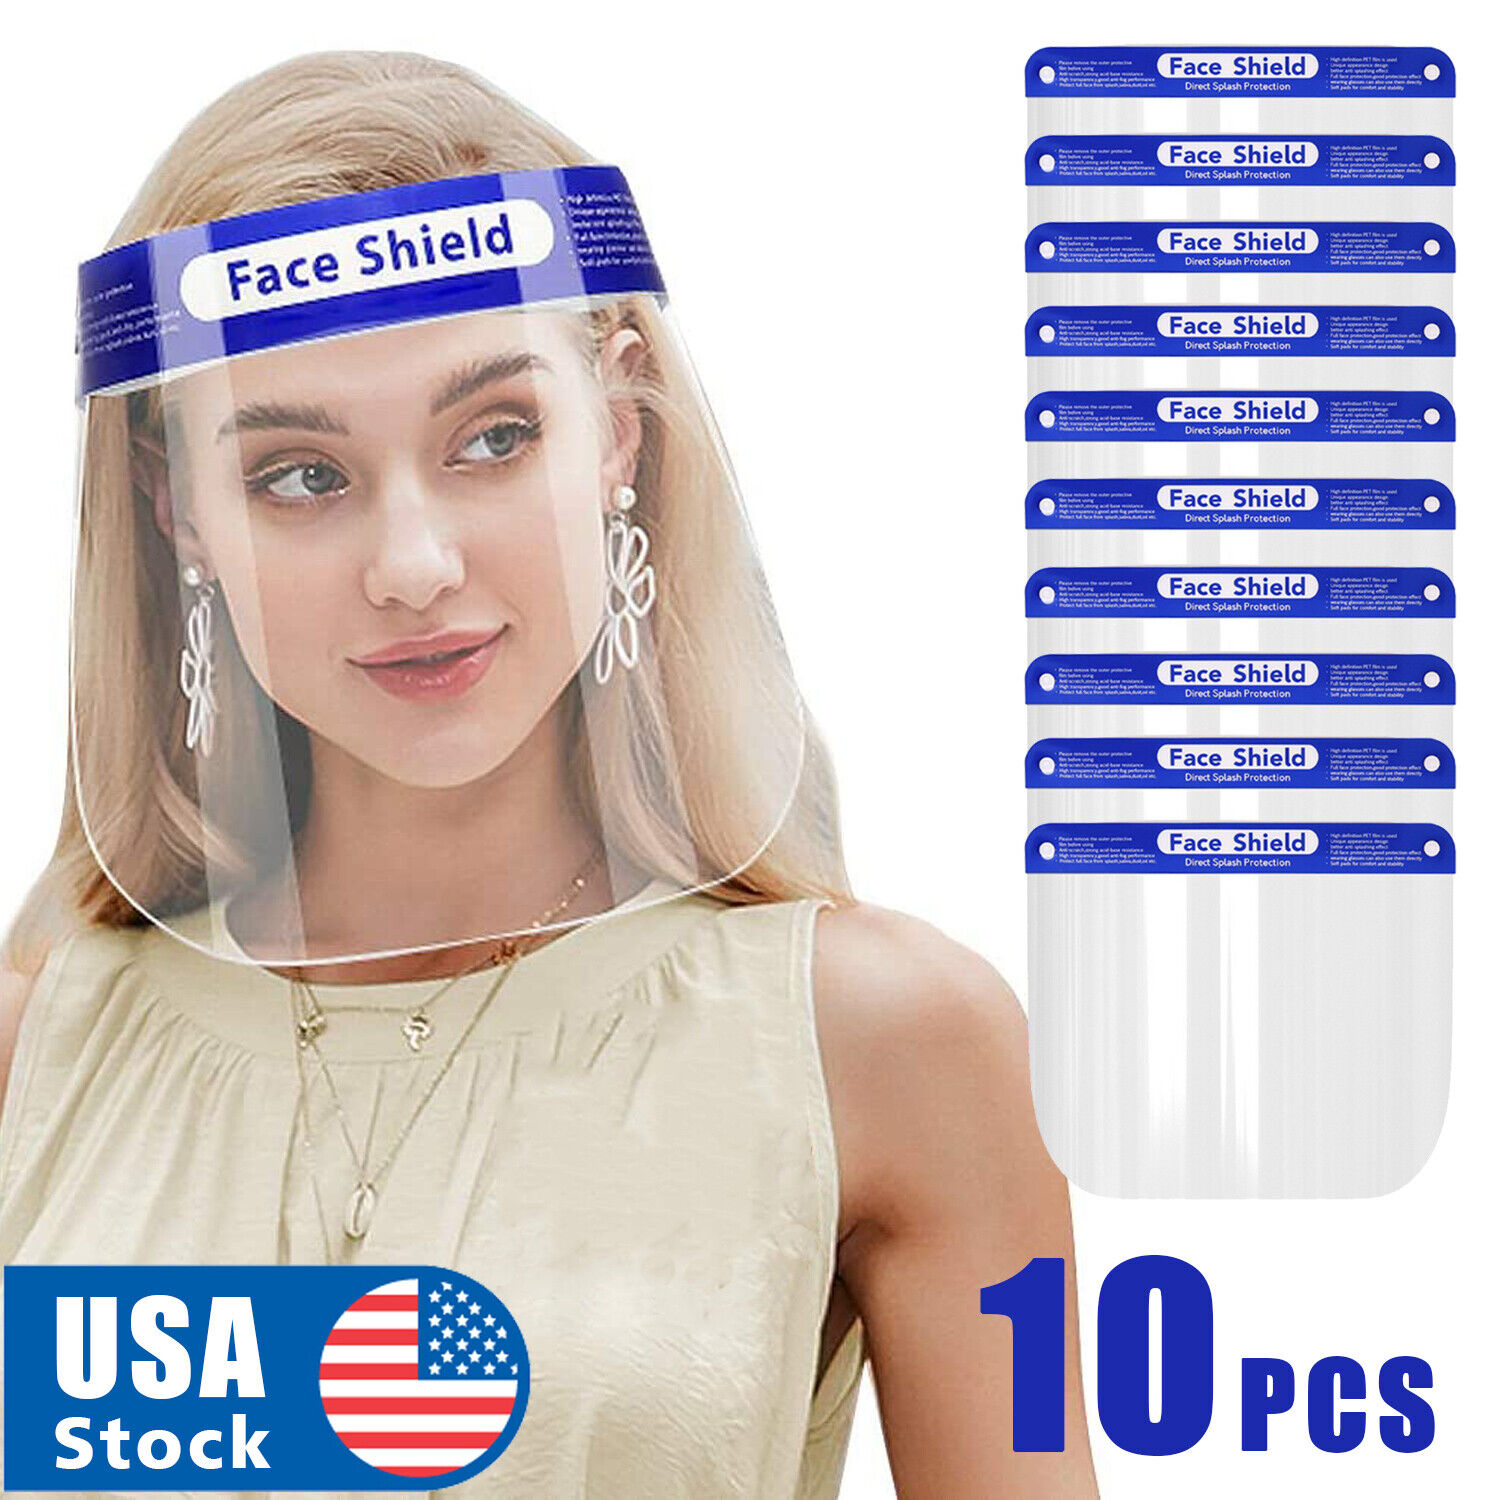 10PCS Full Face Shield Reusable Washable Protection Cover Face Mask Anti-Splash Clothing, Shoes & Accessories